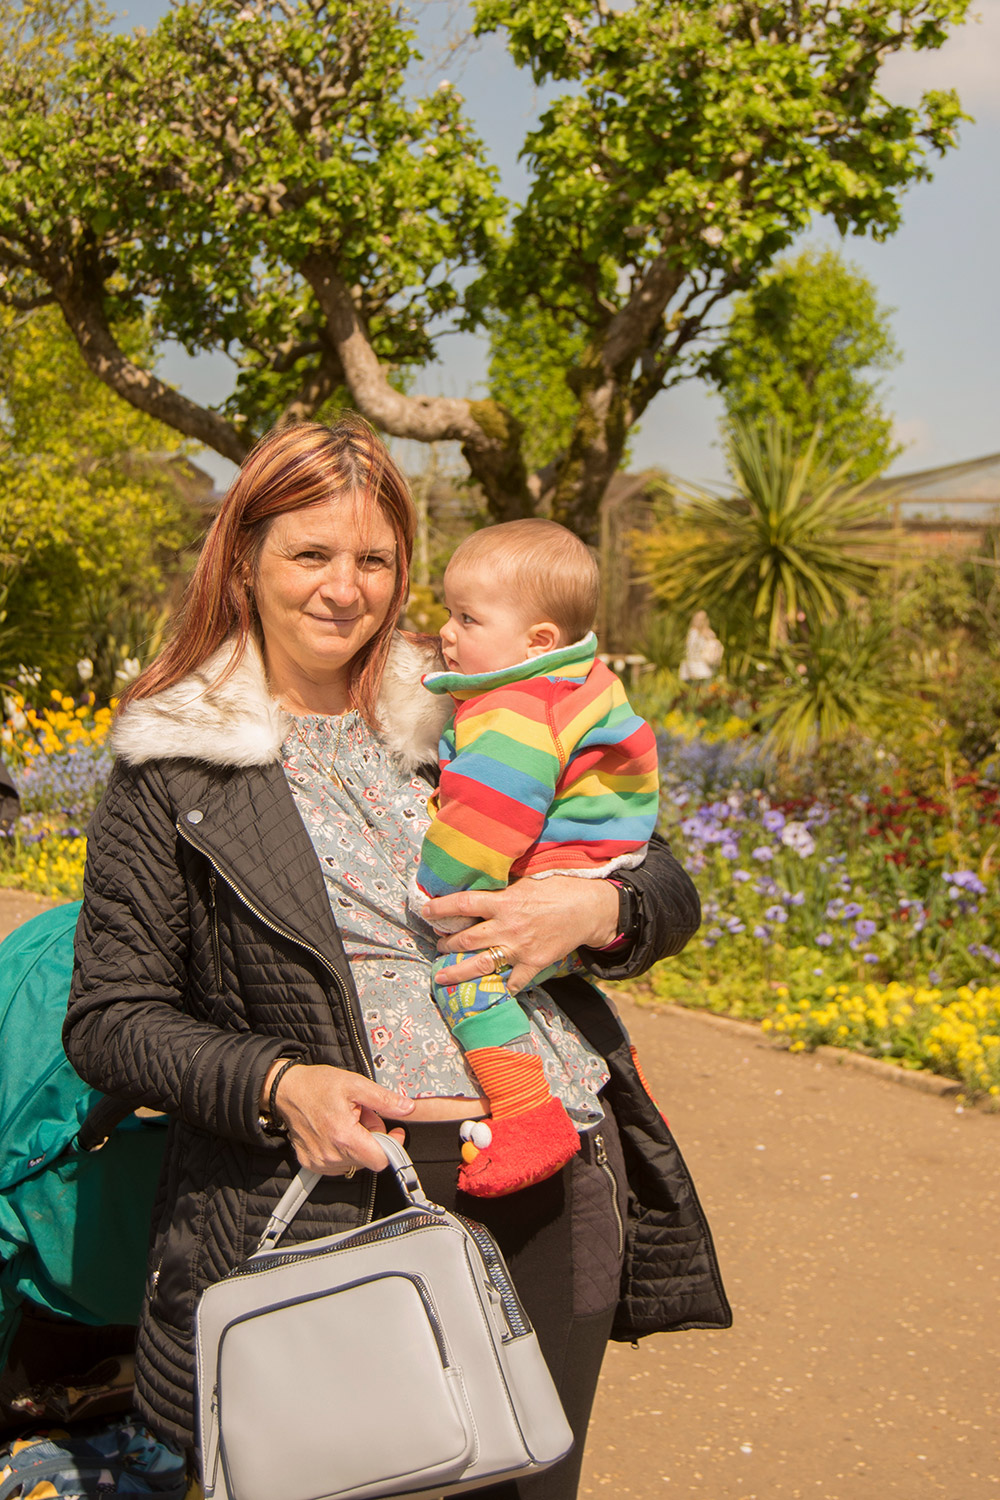 Nanny holding 9 month old baby boy wearing Frugi rainbow snuggle fleece in secret garden at Cotswold Wildlife Park with family